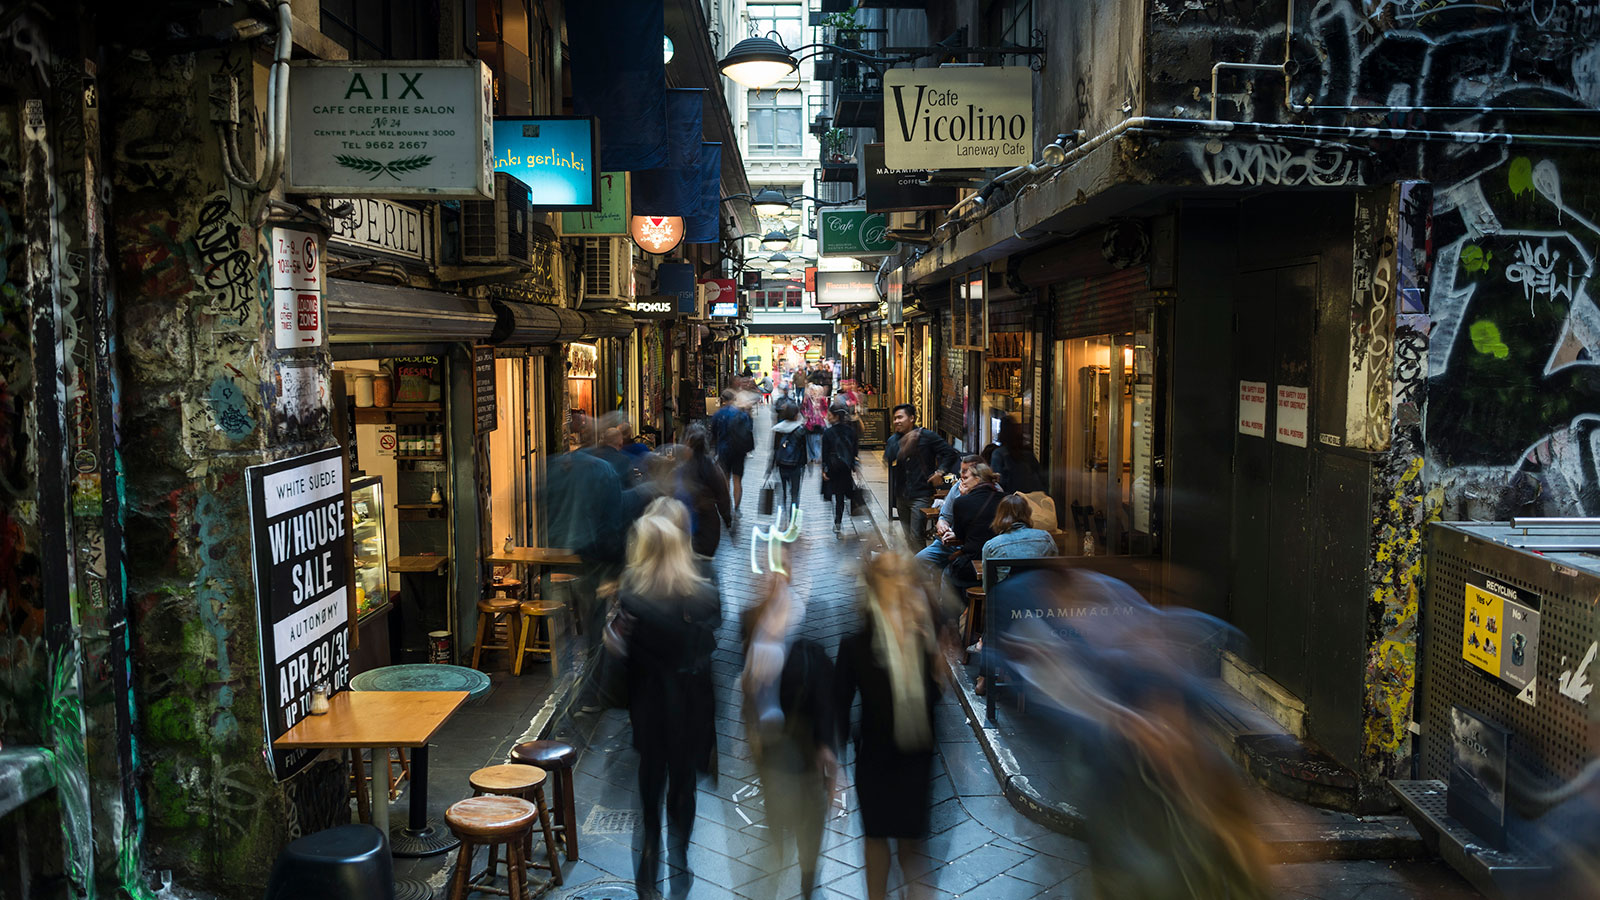 Centre Place, Melbourne, Victoria, Australia. Photo: Robert Blackburn